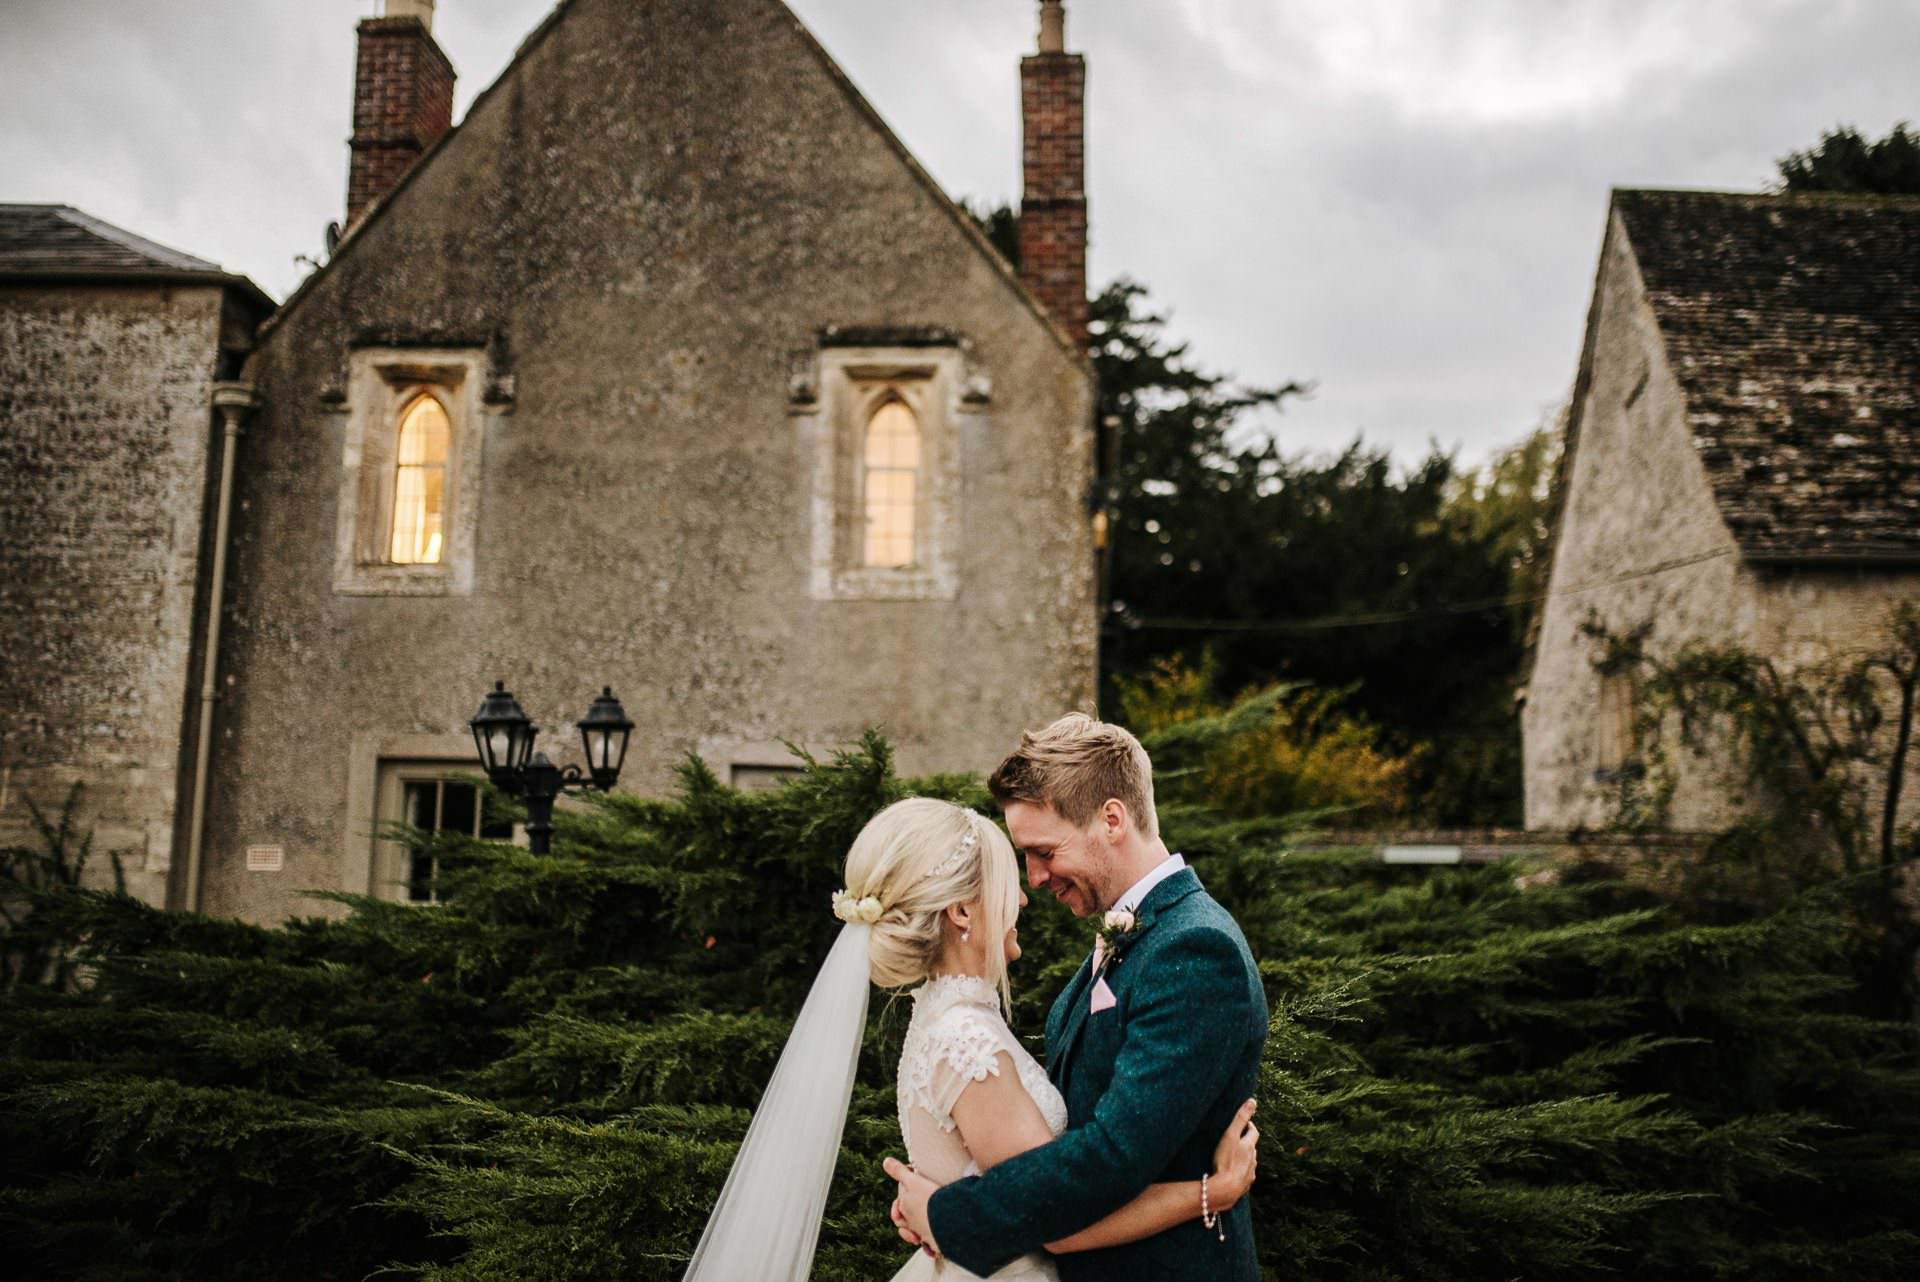 Caswell House Wedding Photographer - Jessica & Chris 30